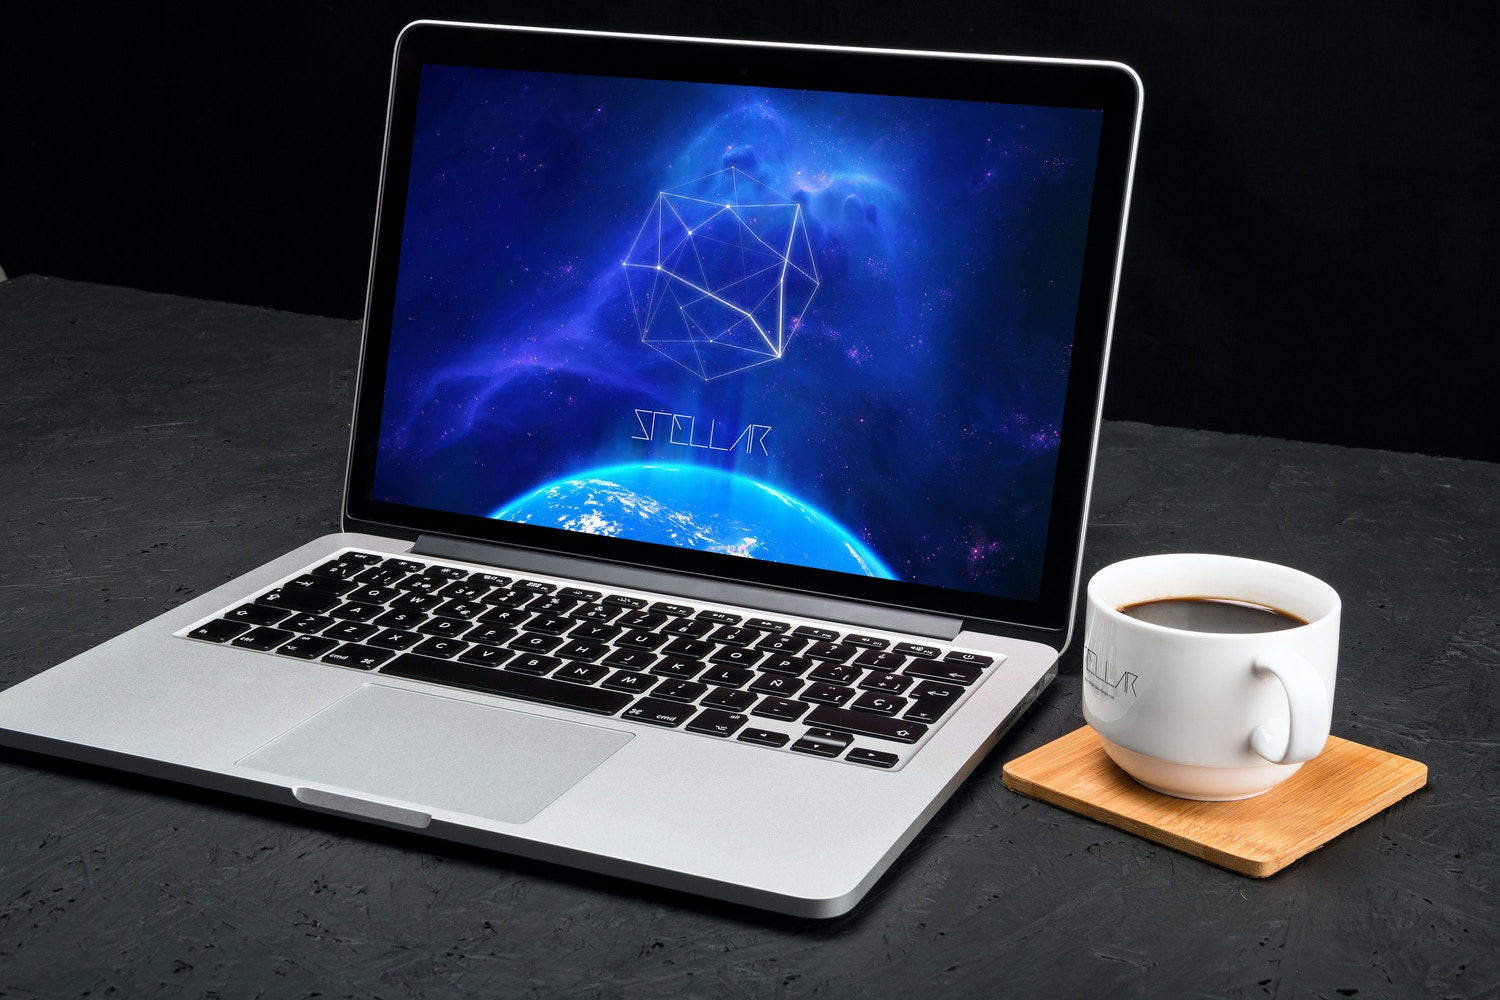 MacBook Pro Retina 13 Mockup 02 by Original Mockups on Original Mockups